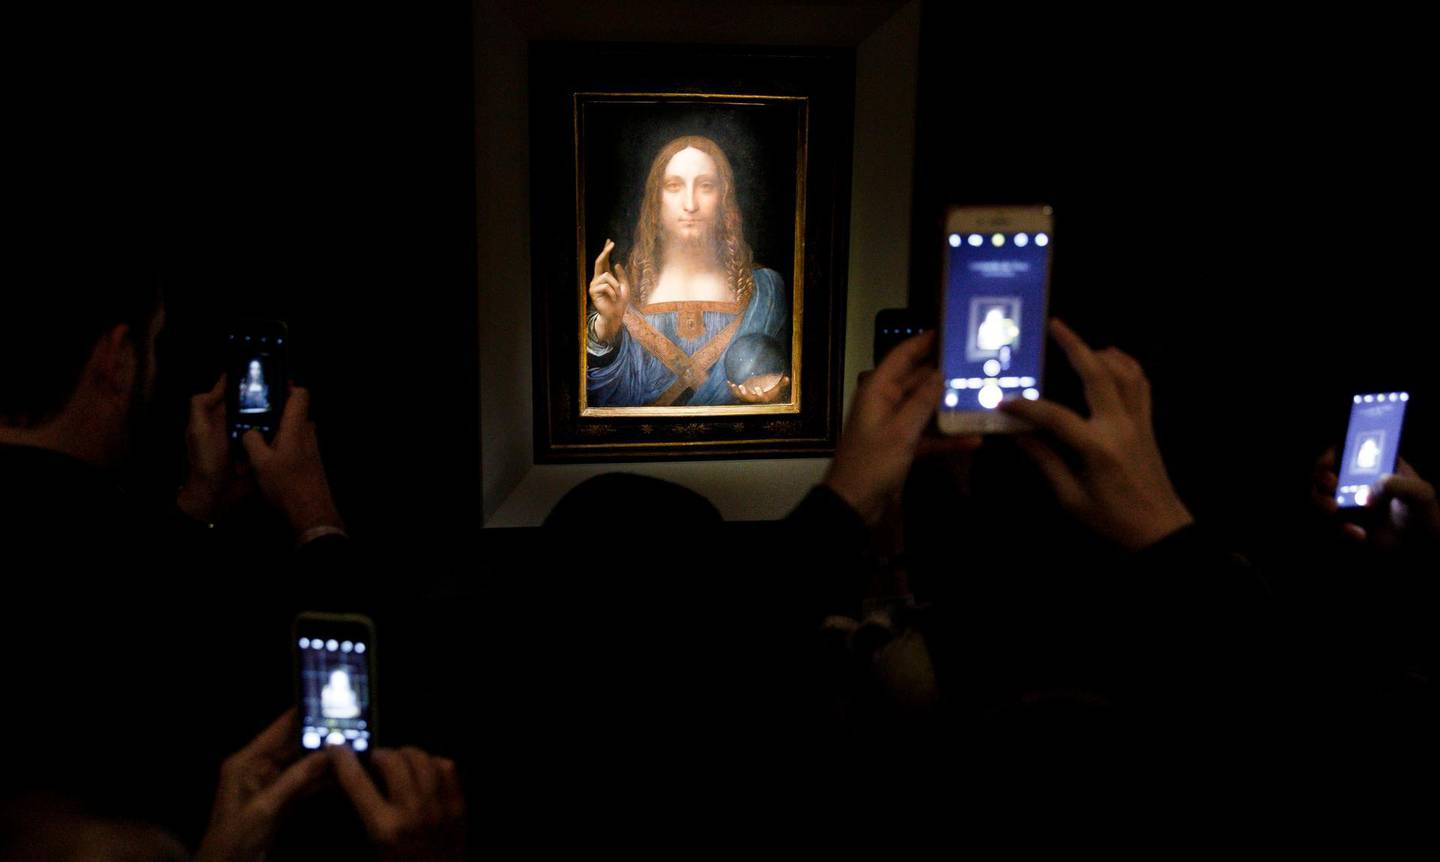 epa06382744 YEARENDER 2017 NOVEMBER  People take pictures of the painting 'Salvator Mundi' by Leonardo da Vinci (circa 1500) during a public preview before an auctioning of the painting tonight at Christie's auction house in New York, New York, USA, 15 November 2017. The painting is reportedly one of only twenty paintings by Da Vinci and was sold for 450 million USD.  EPA/JUSTIN LANE